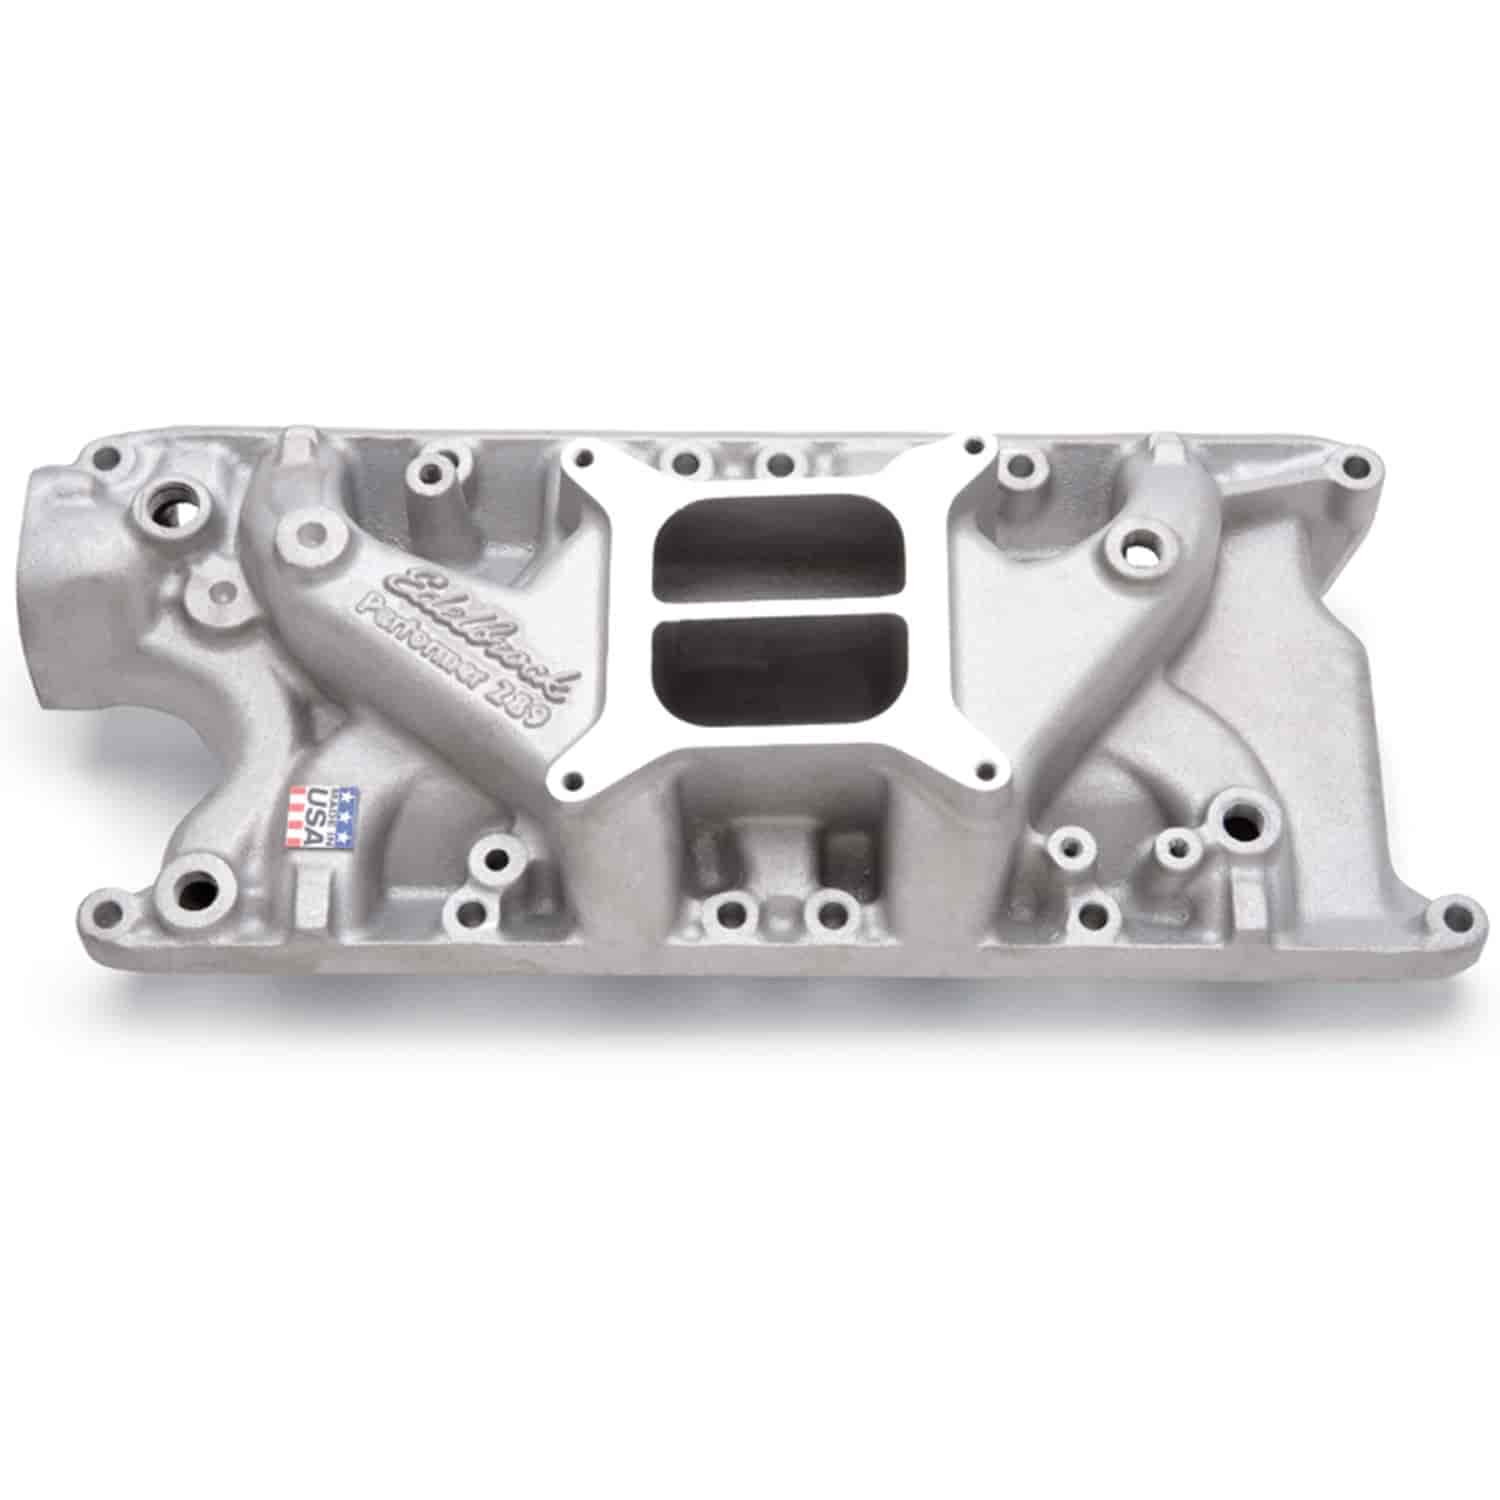 Edelbrock 2121 - Edelbrock Performer Manifolds for Ford